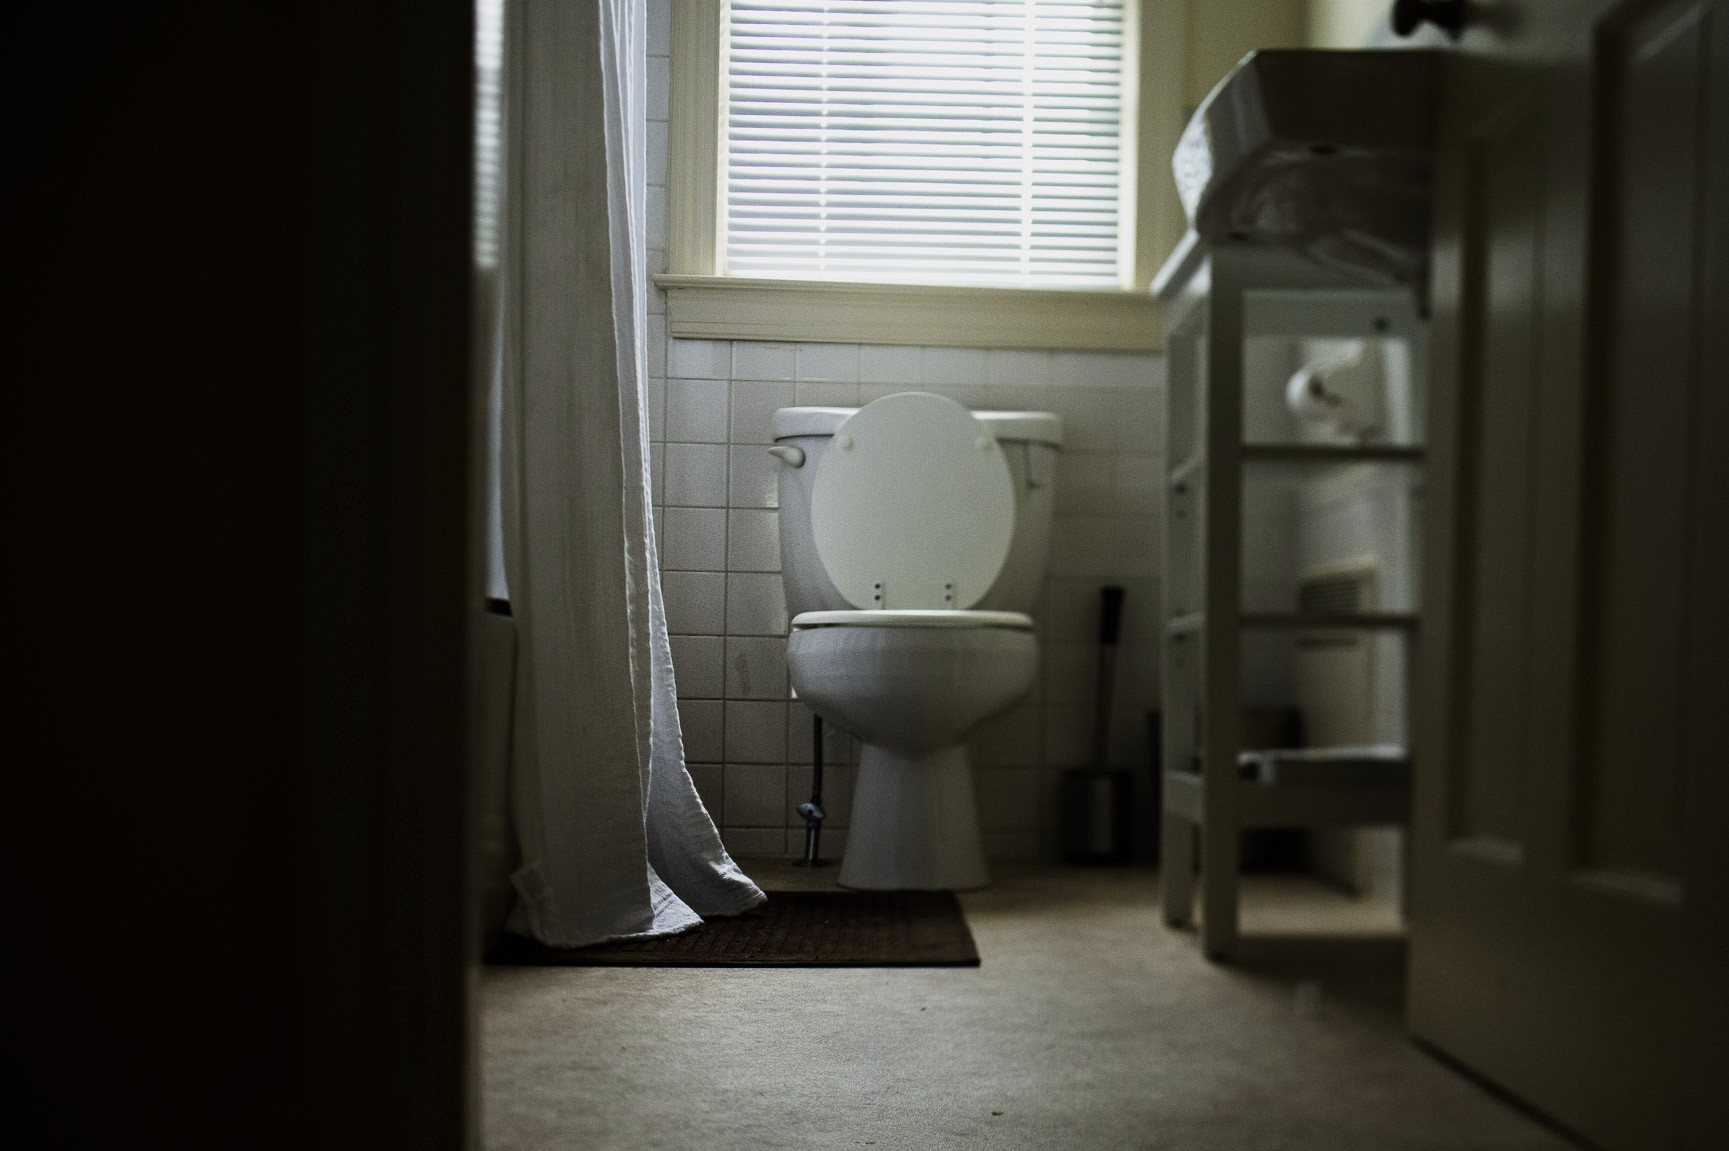 Everyday-Life-by-Sarah-Wilkerson-1730px-4105